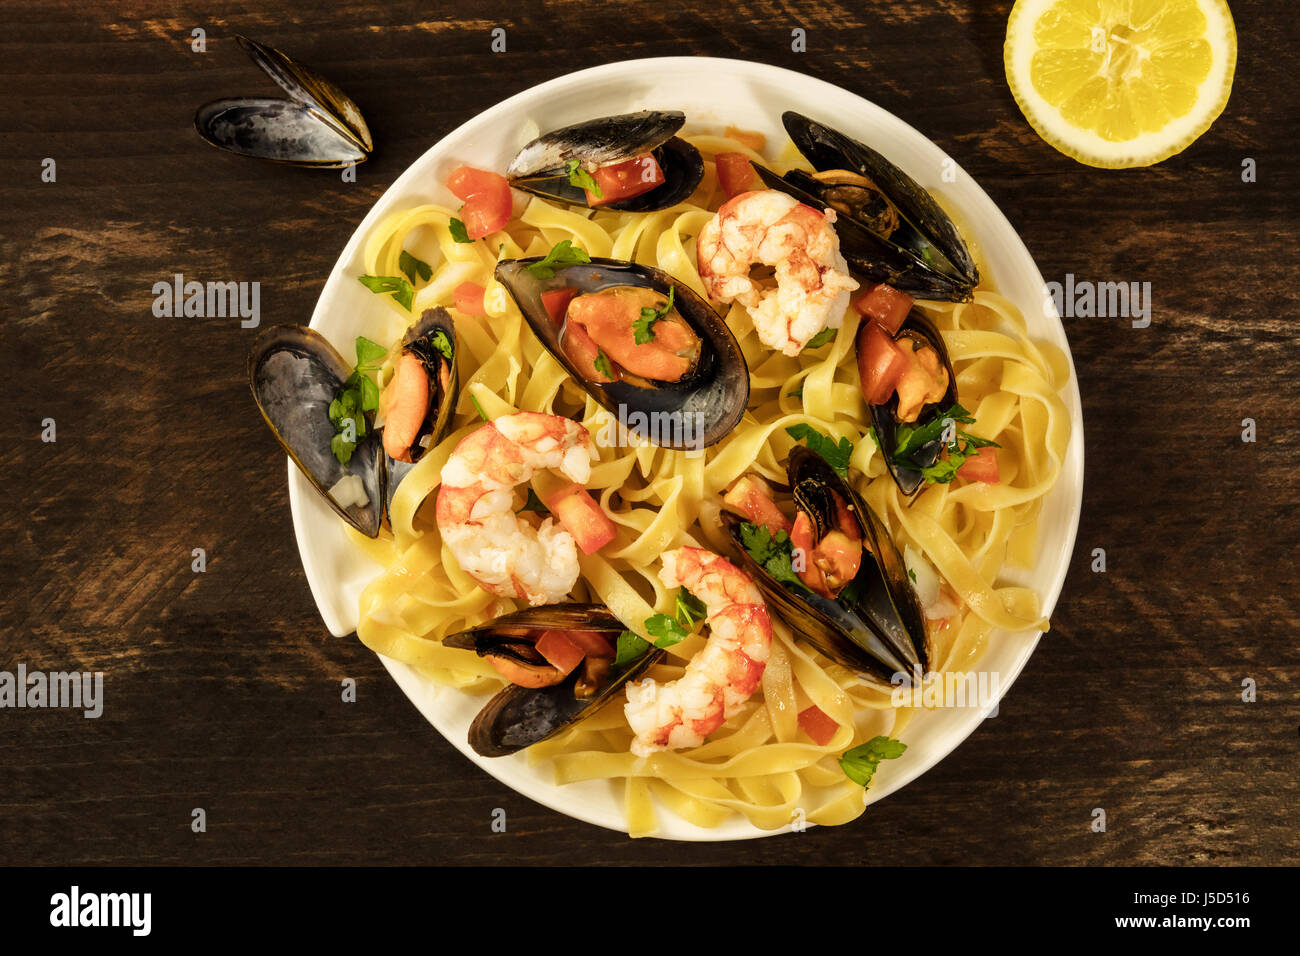 Seafood pasta dish with mussels and shrimps - Stock Image